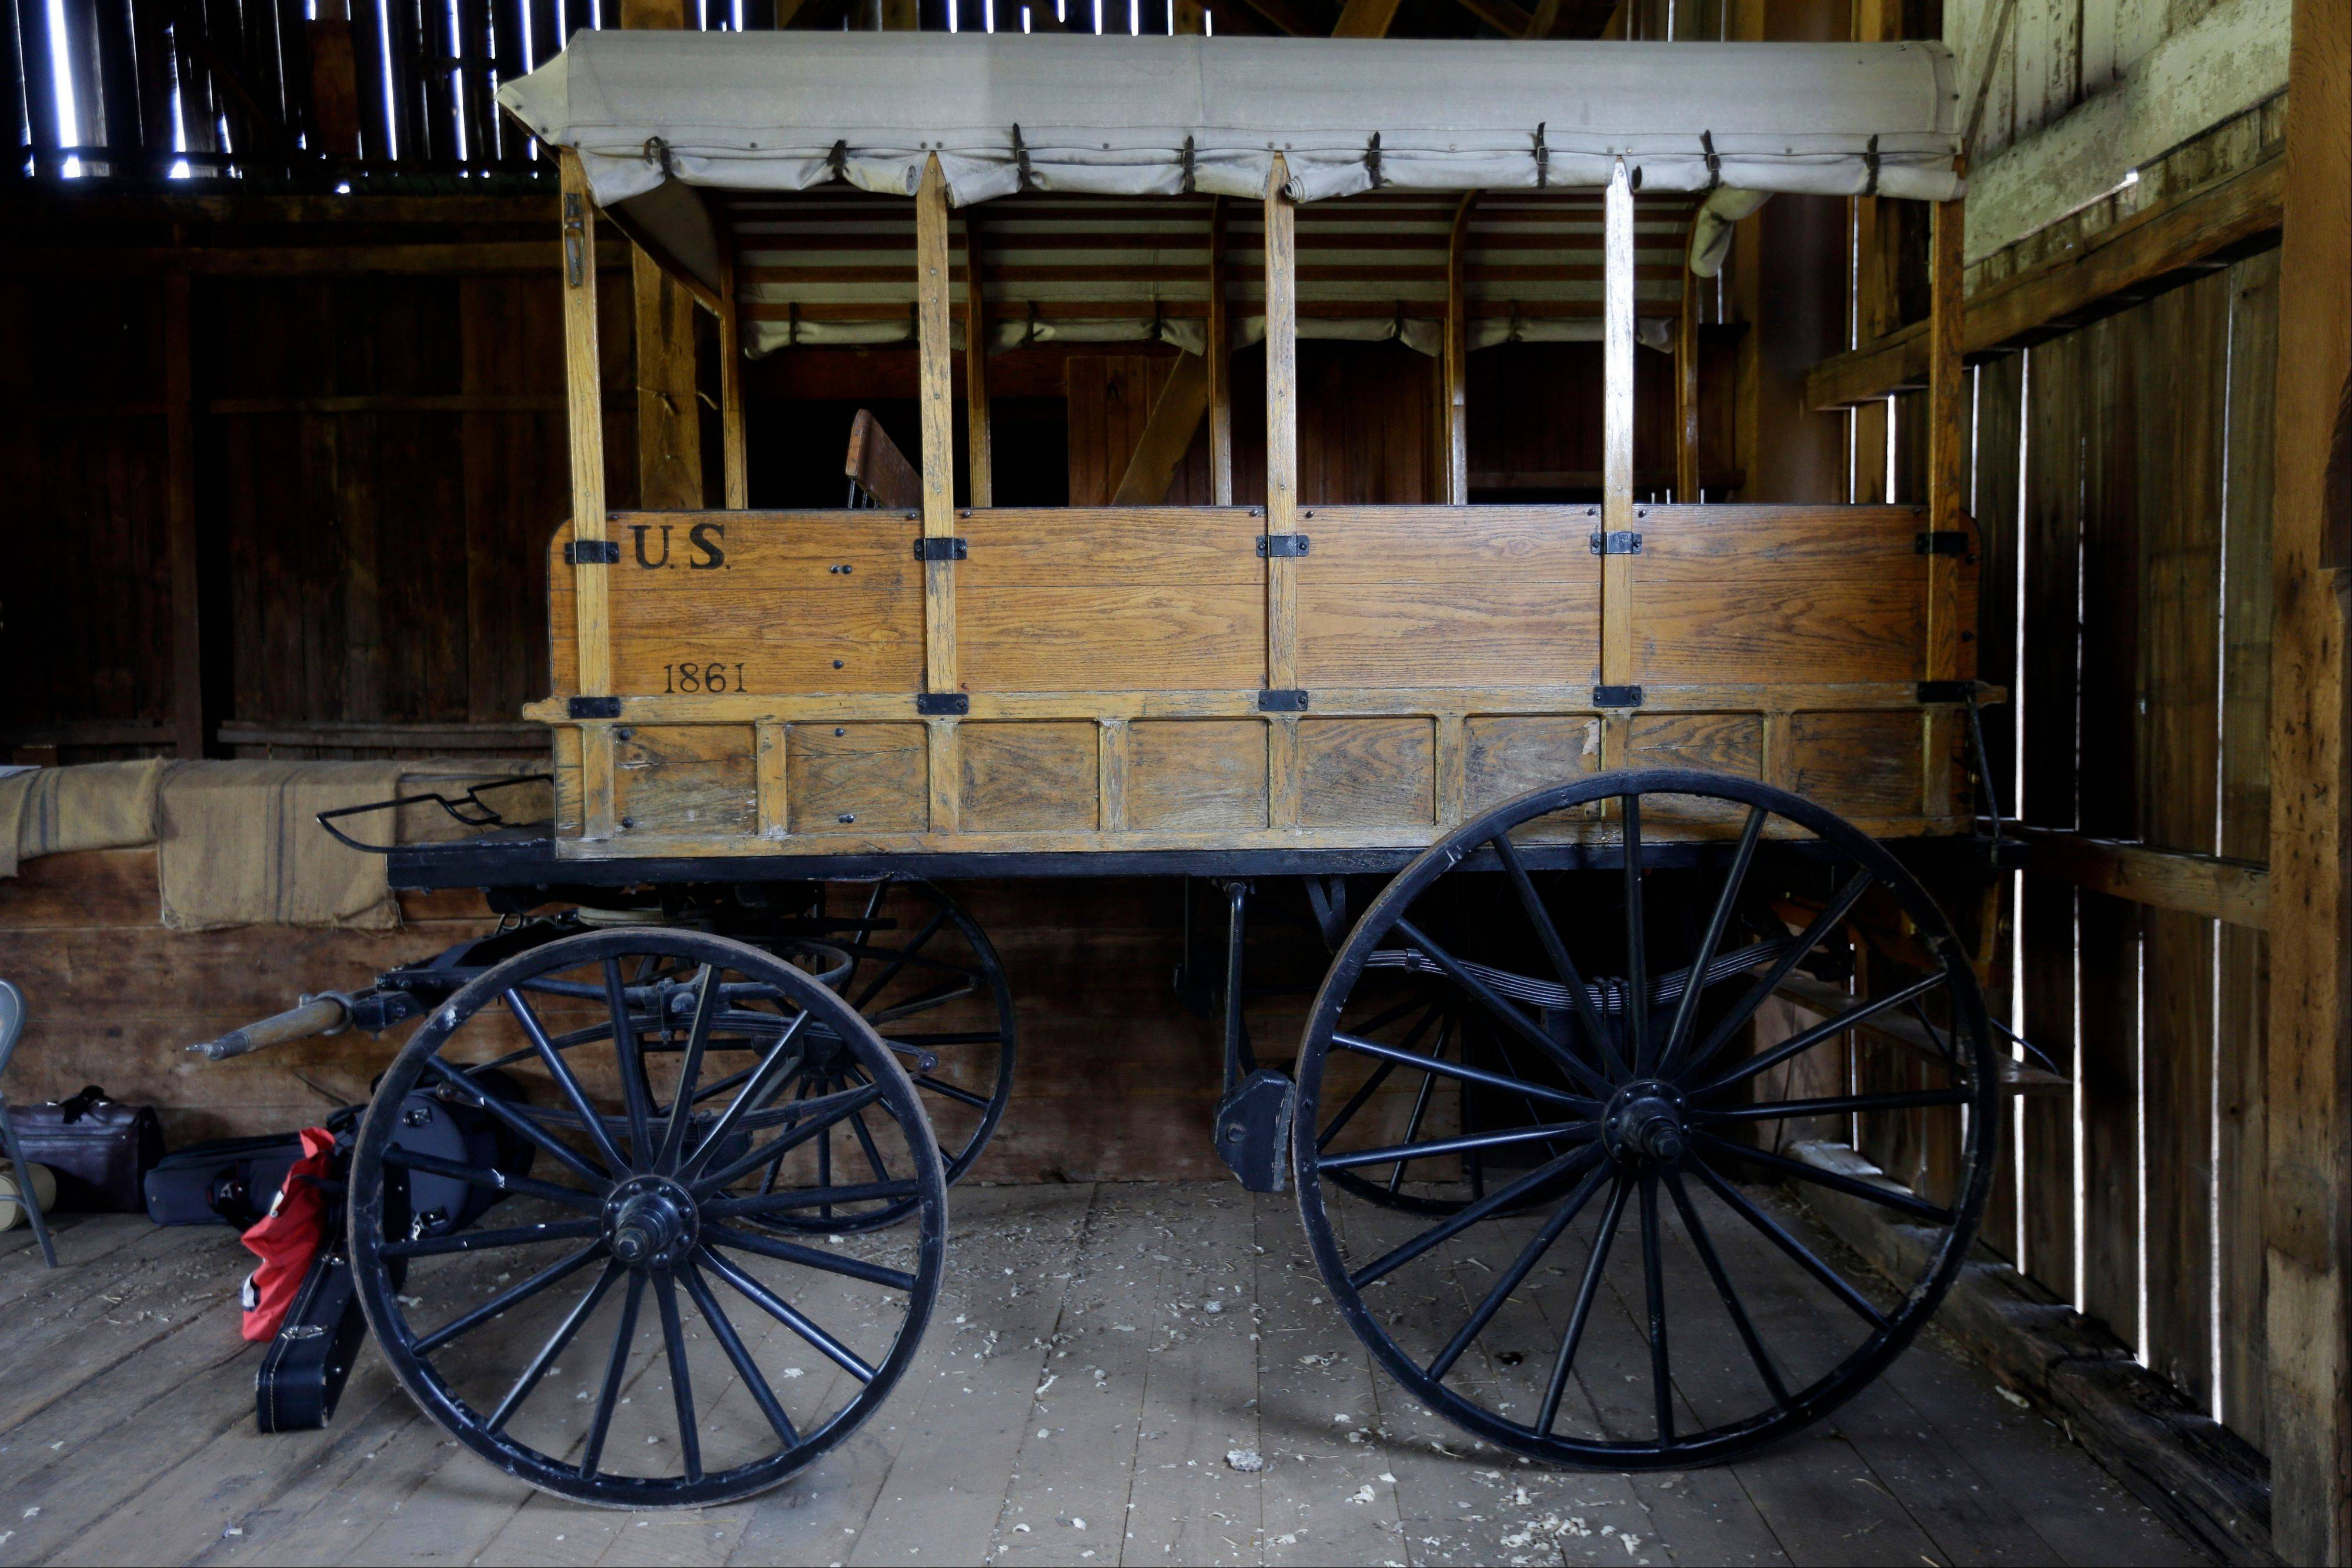 A replica of a Rucker ambulance at the Pry House Field Hospital Museum.